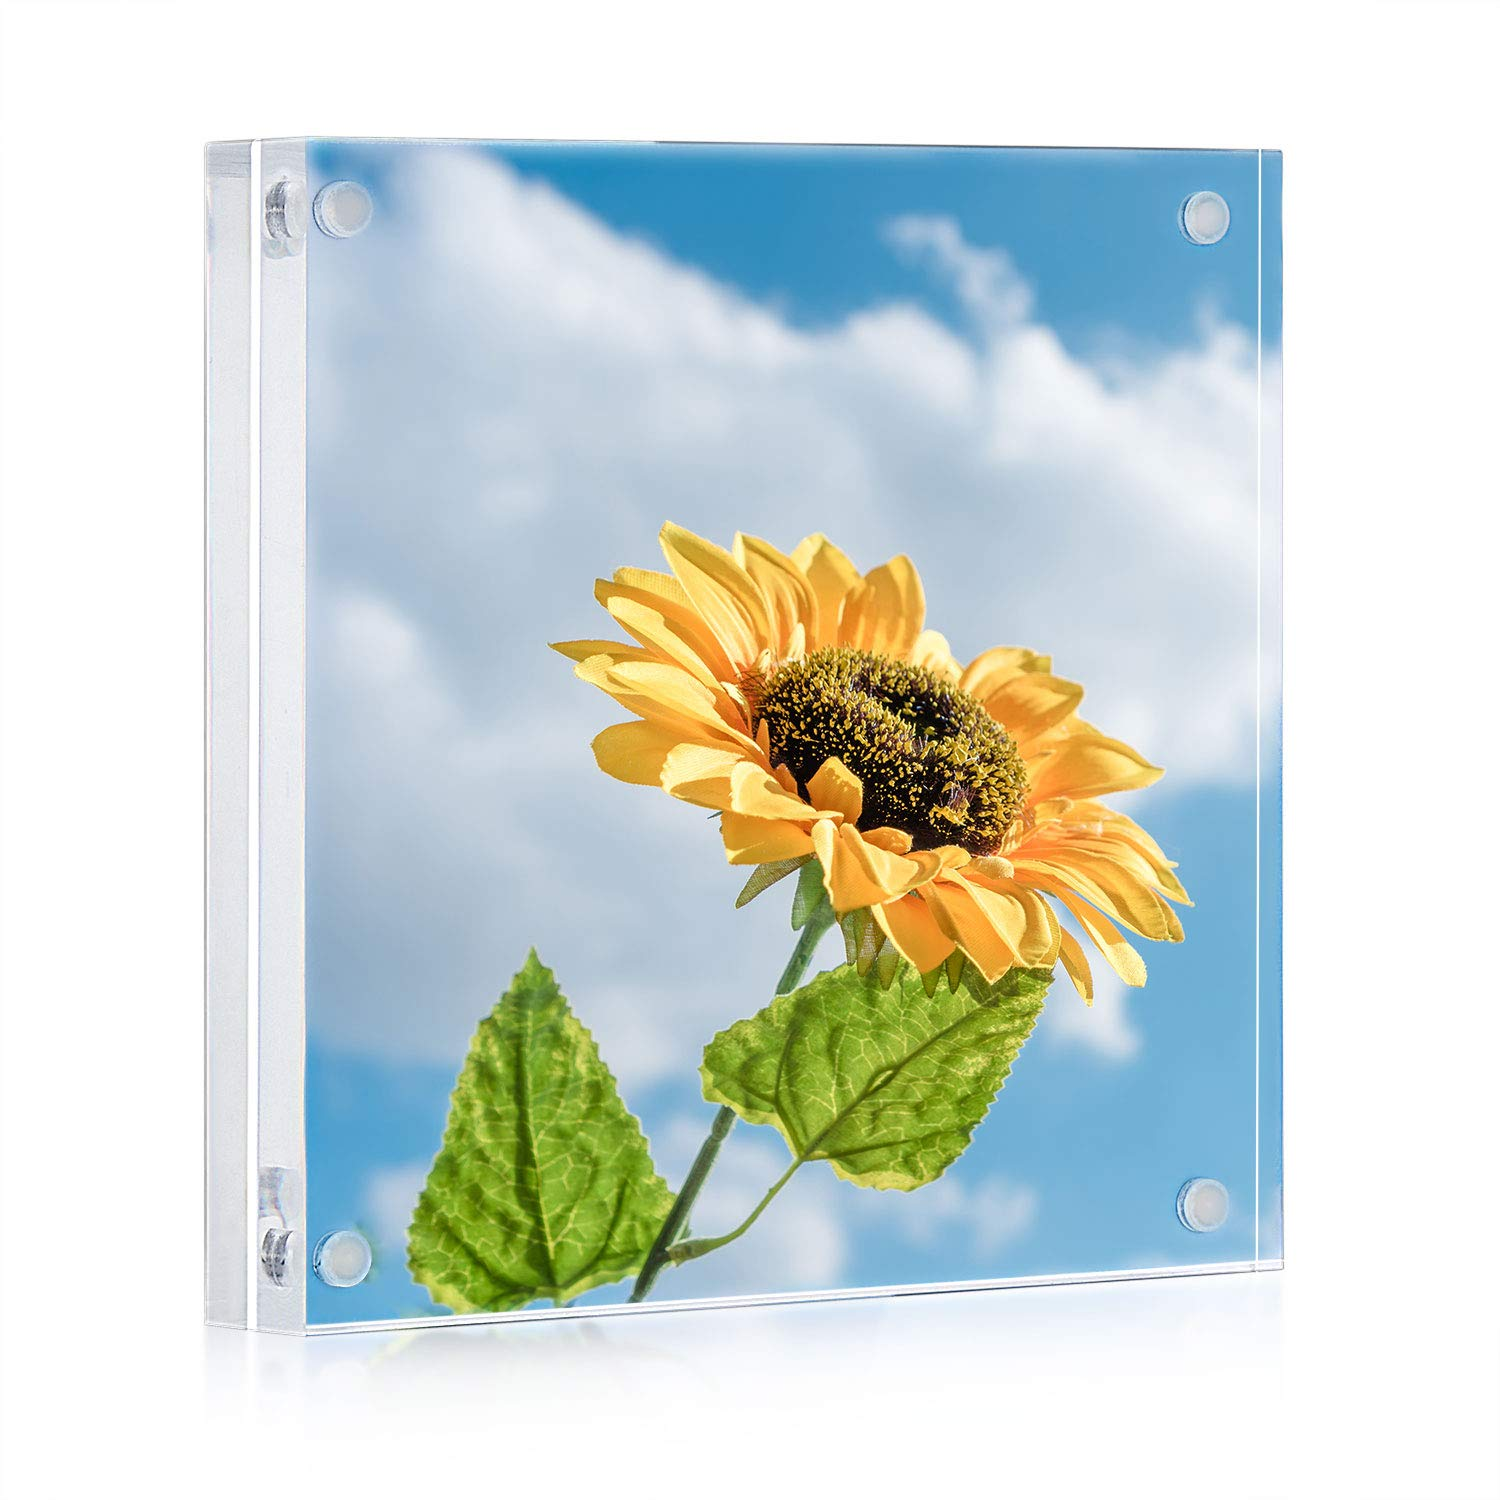 ONE WALL Acrylic Picture Frame 5x5 Inch, Magnetic Clear Photo Frame Free Standing for Tabletop Desktop Display by ONE WALL